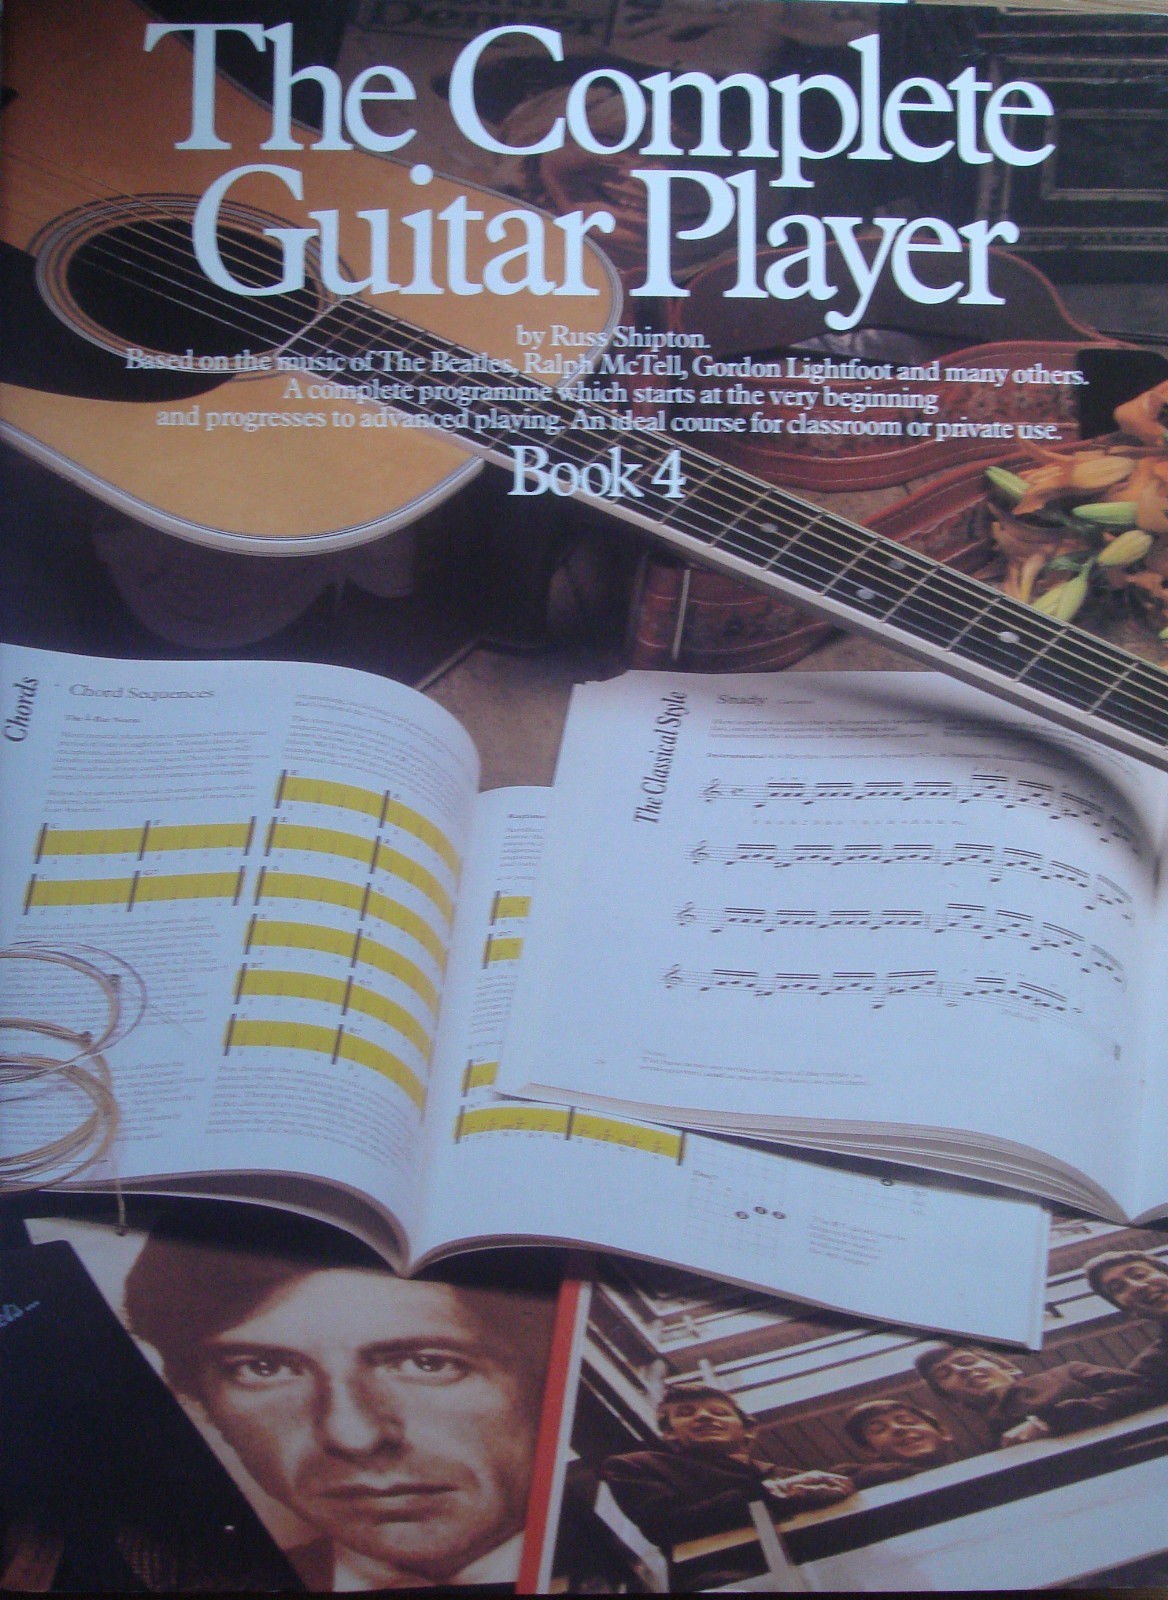 The Complete Guitar Player Book 4 Russ Shipton The Beatles Lightfoot McTell S163